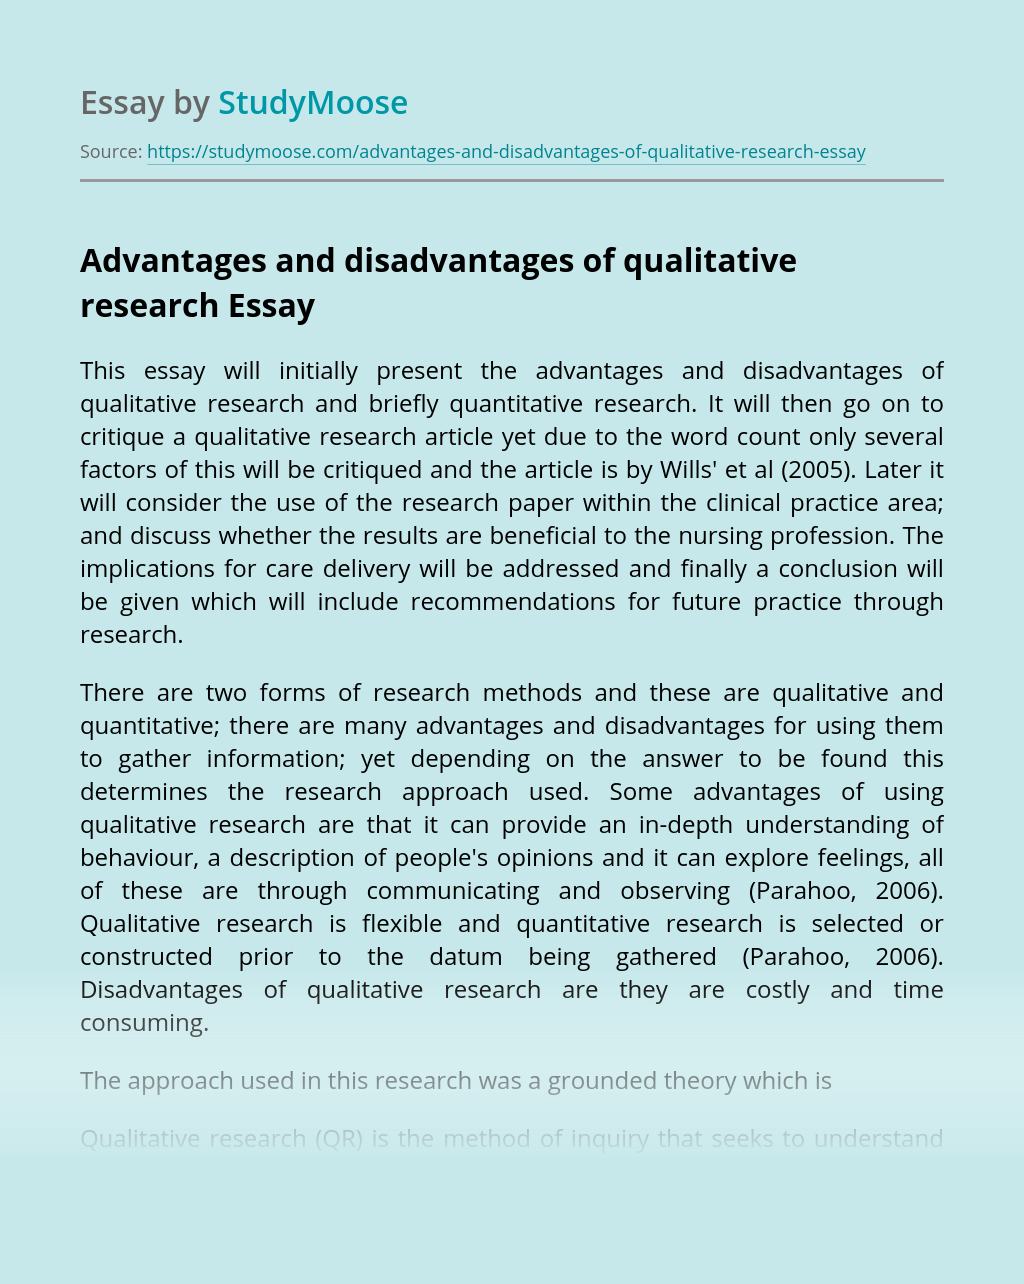 Advantages and disadvantages of qualitative research